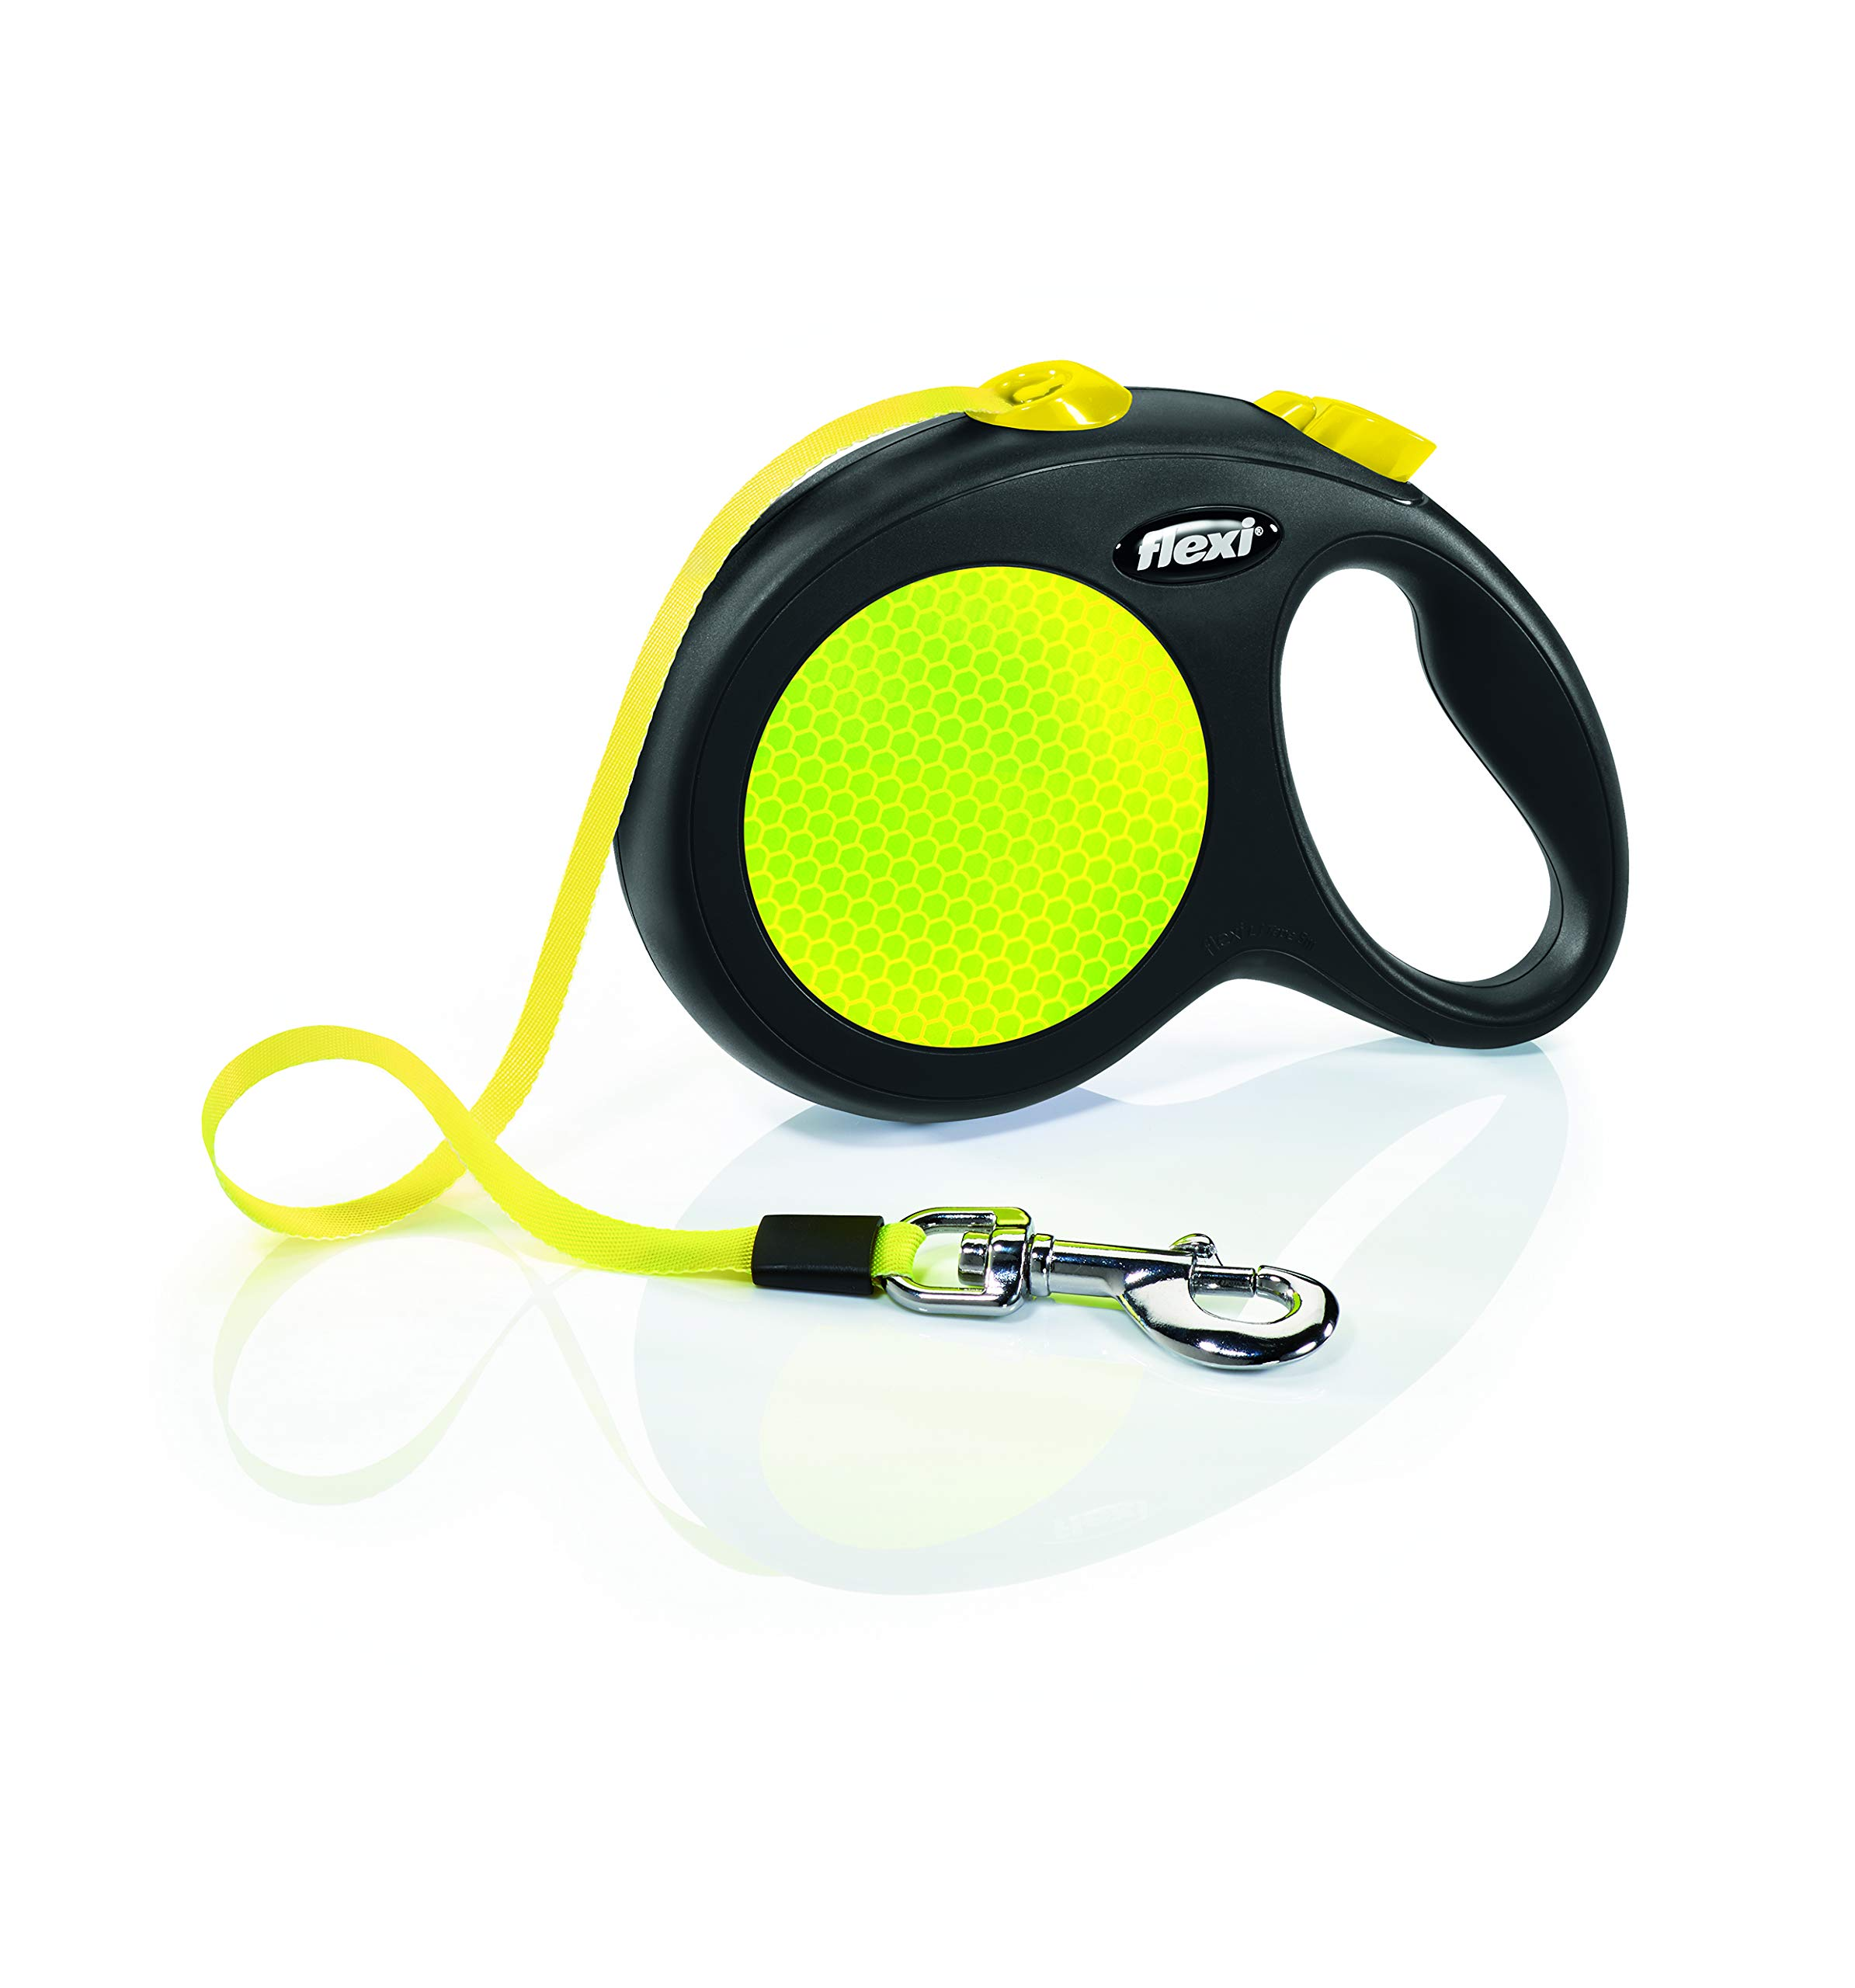 Flexi New Neon Retractable 16' Dog Leash Tape, Large, Black/Neon by Flexi